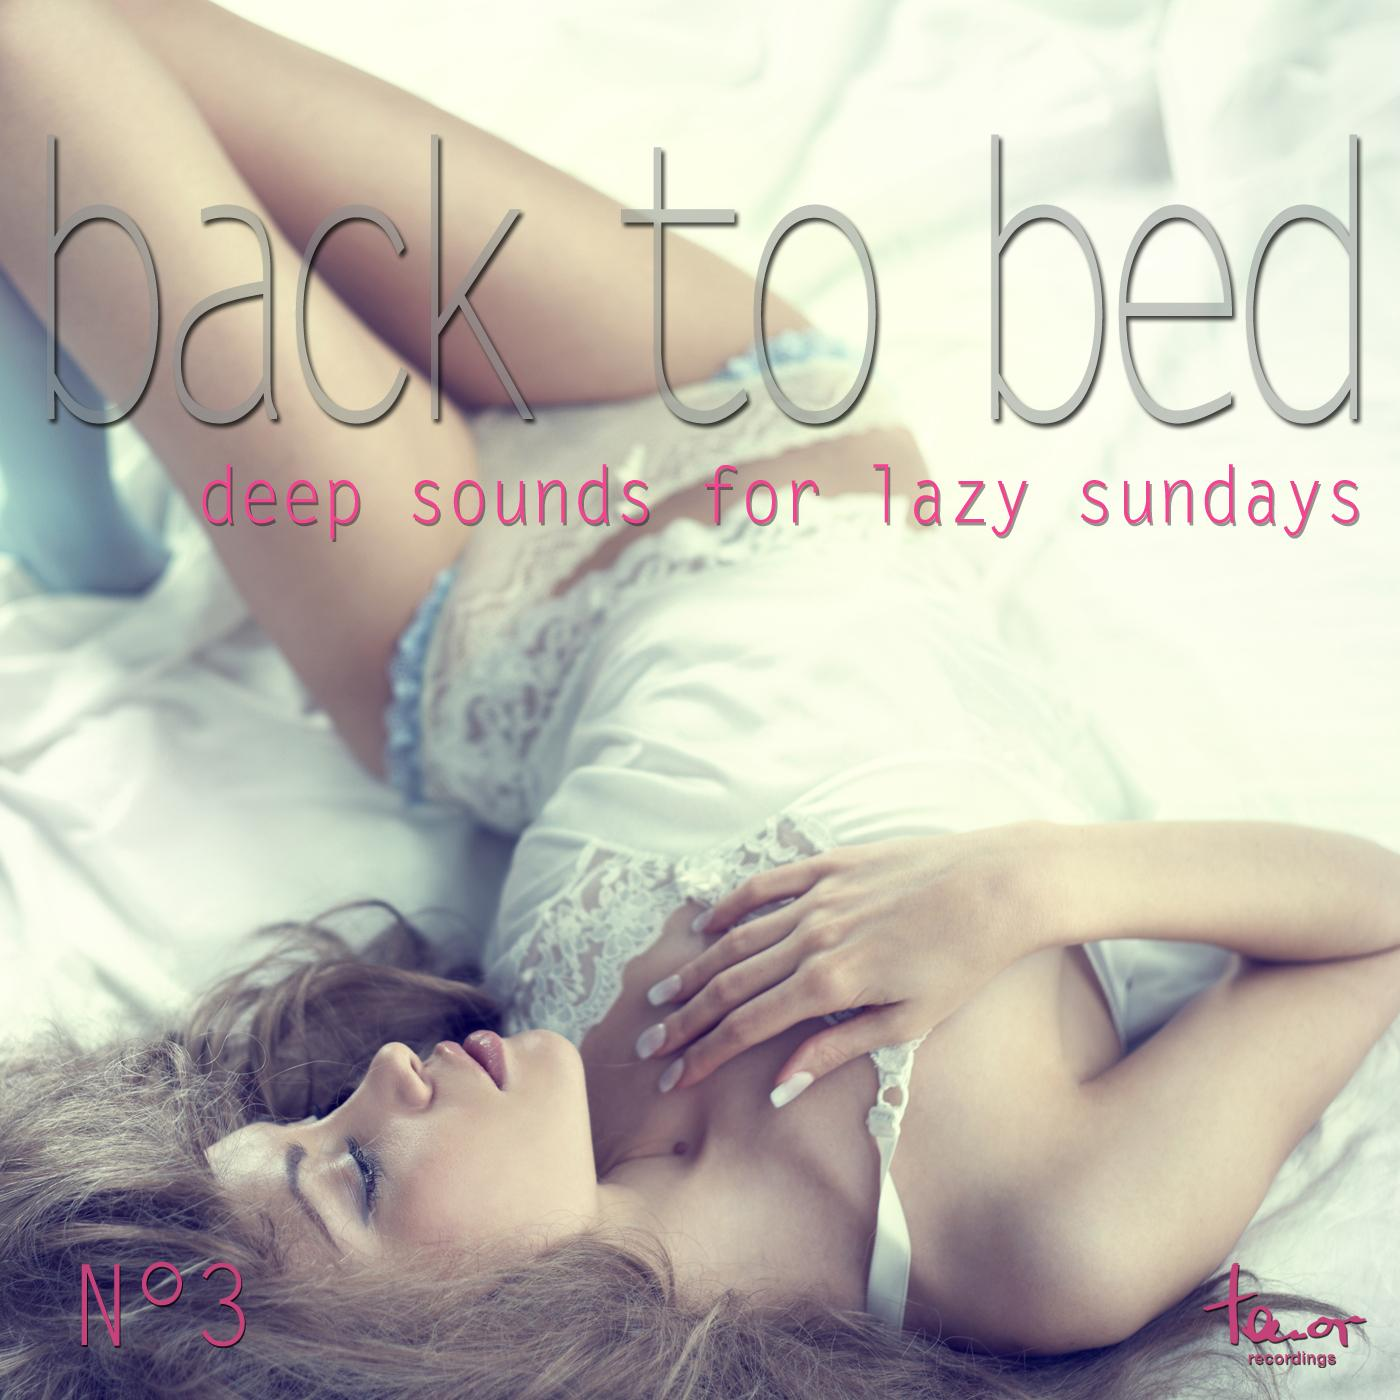 Back To Bed Deep Sounds for Lazy Sundays No 3 (2013) [MULTI]